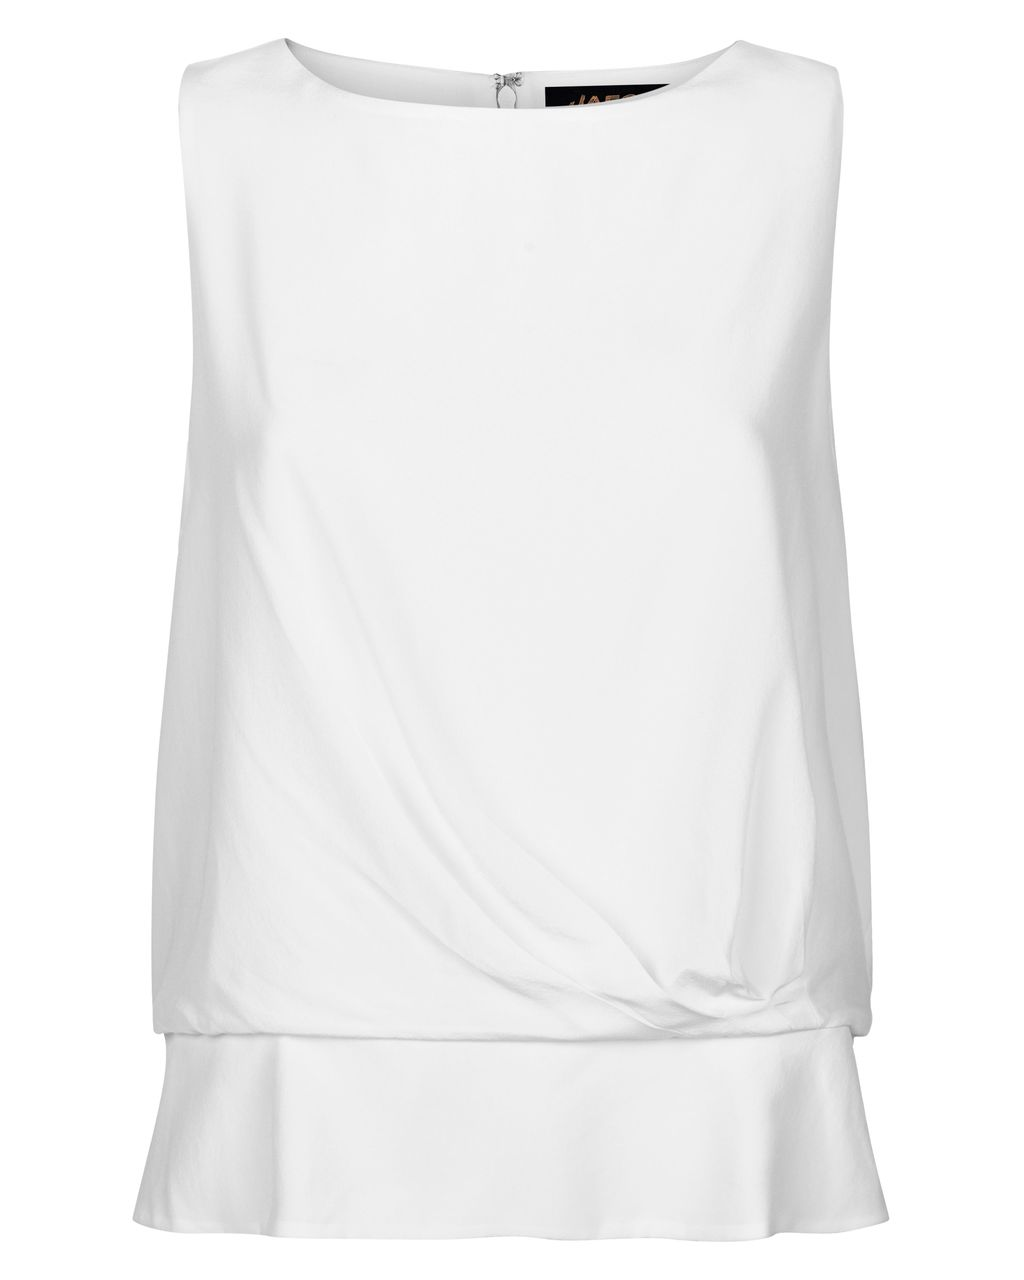 Silk Draped Peplum Top, White - neckline: round neck; pattern: plain; sleeve style: sleeveless; waist detail: peplum waist detail; predominant colour: white; occasions: casual; length: standard; style: top; fibres: silk - 100%; fit: body skimming; sleeve length: sleeveless; texture group: silky - light; pattern type: fabric; season: s/s 2016